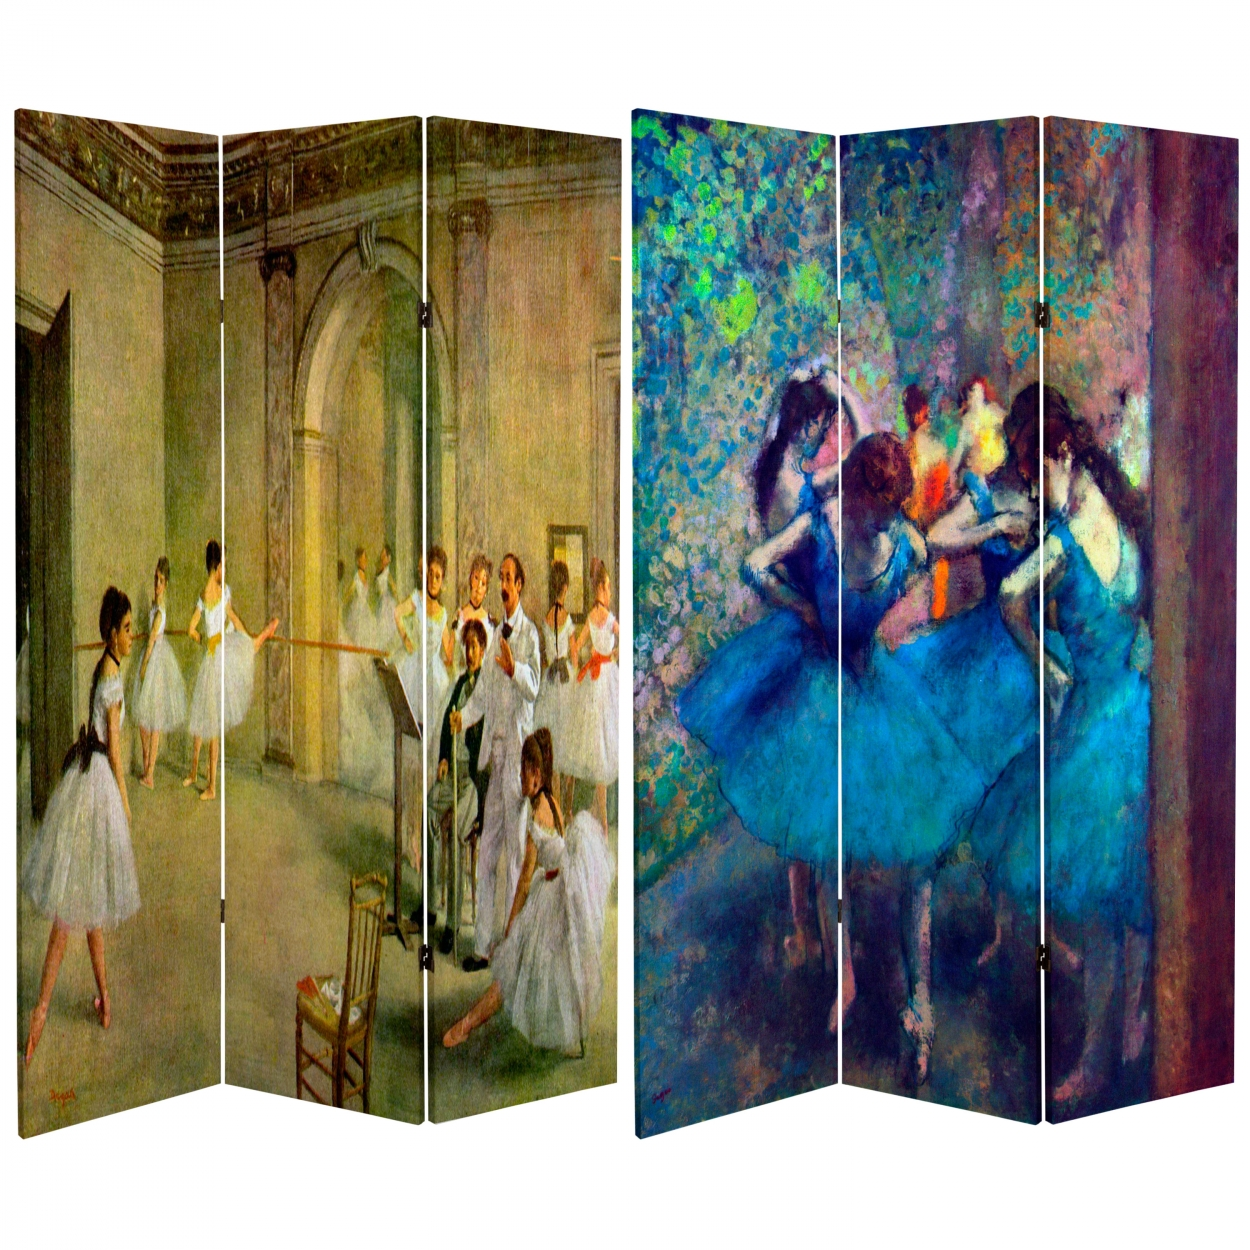 Buy 6 ft Tall Works of Degas Room Divider Dancers Online CAN